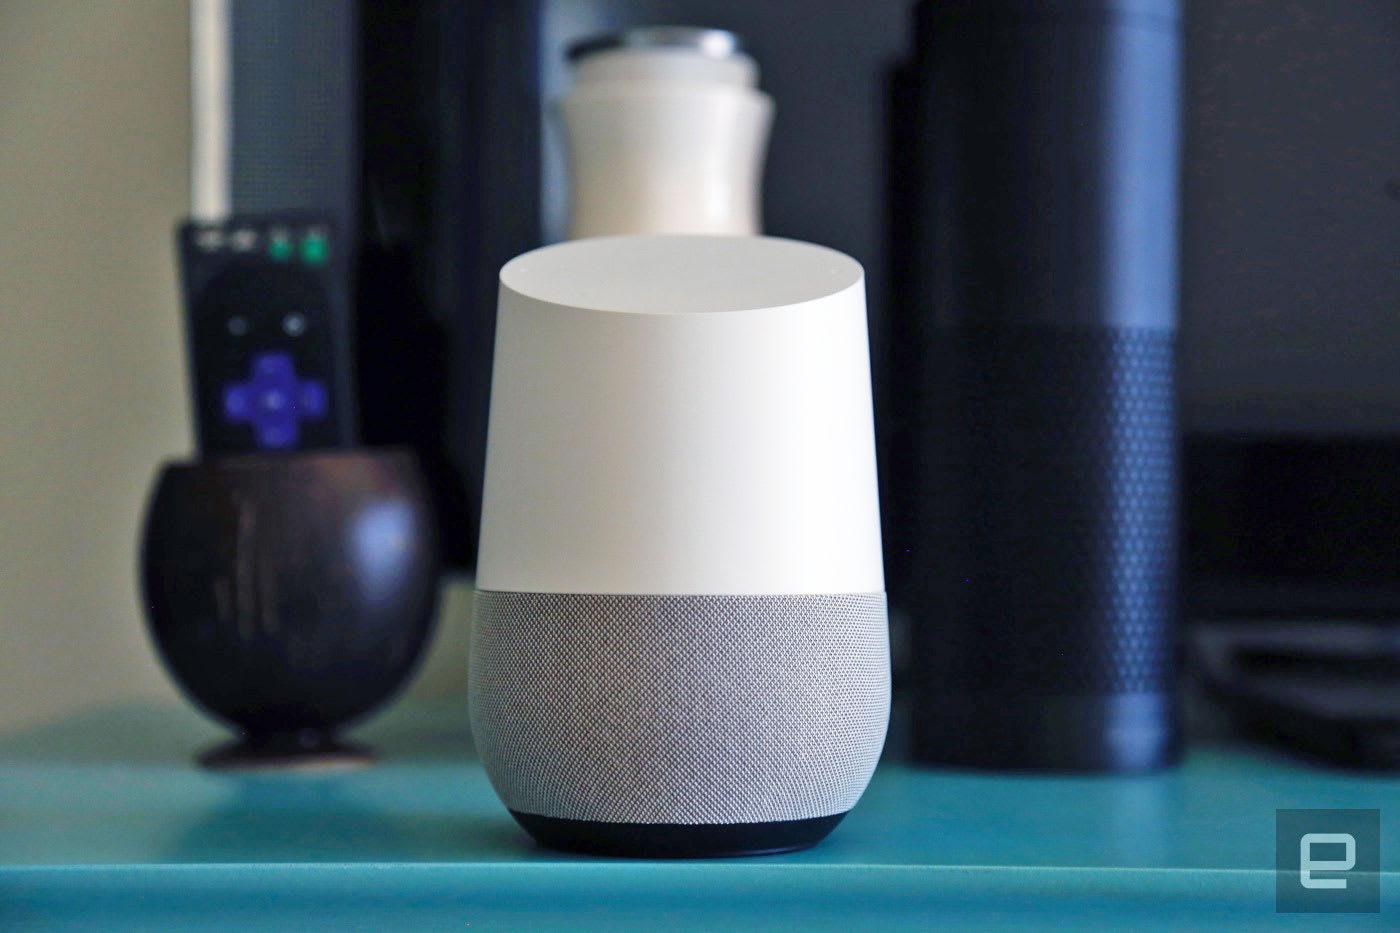 Googles Assistant Will Help Sync Your Smart Home Devices Have A Leviton 6124 Timer Part Of My Lights Come The Others Do Not